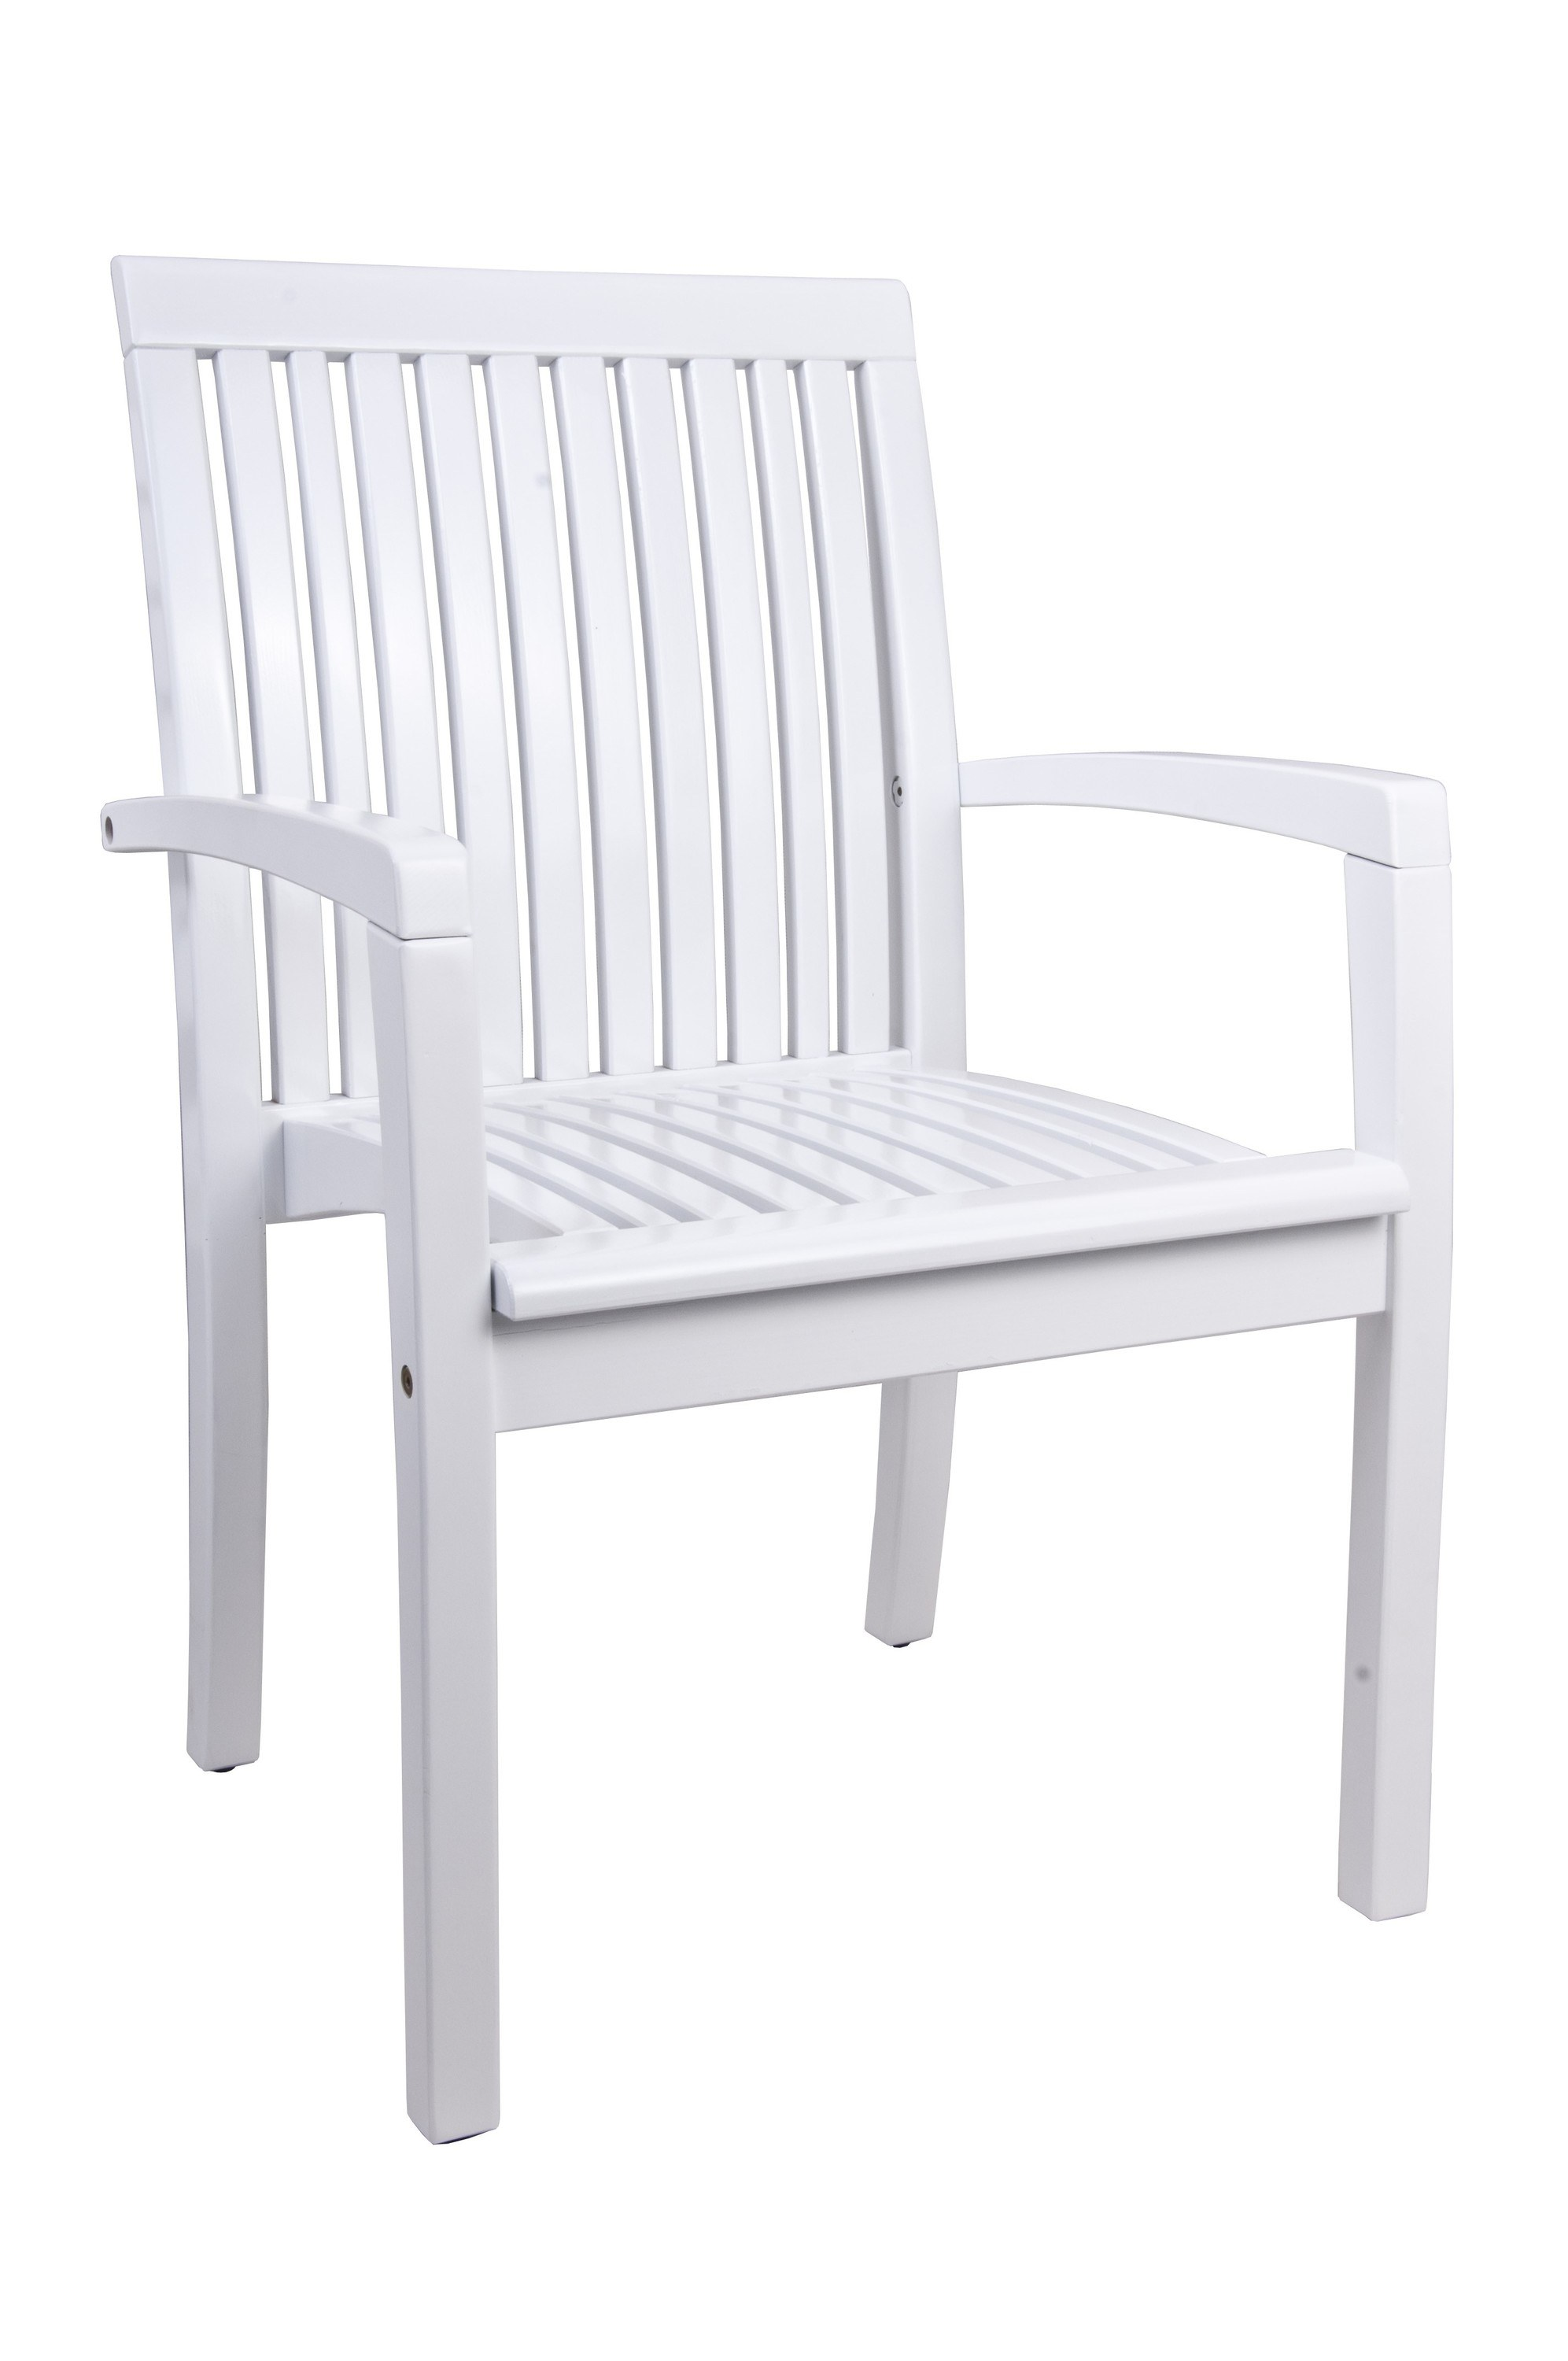 <p>Outdoor Furniture – Wooden Dining Collection Positano.</p> <p> </p> <p>Positano Furniture – Stylish, Elegant Stackable Chair.</p> <p> </p> <p>Ideally suited for bringing brightness and light to al fresco hospitality dining areas. Cushions available</p>